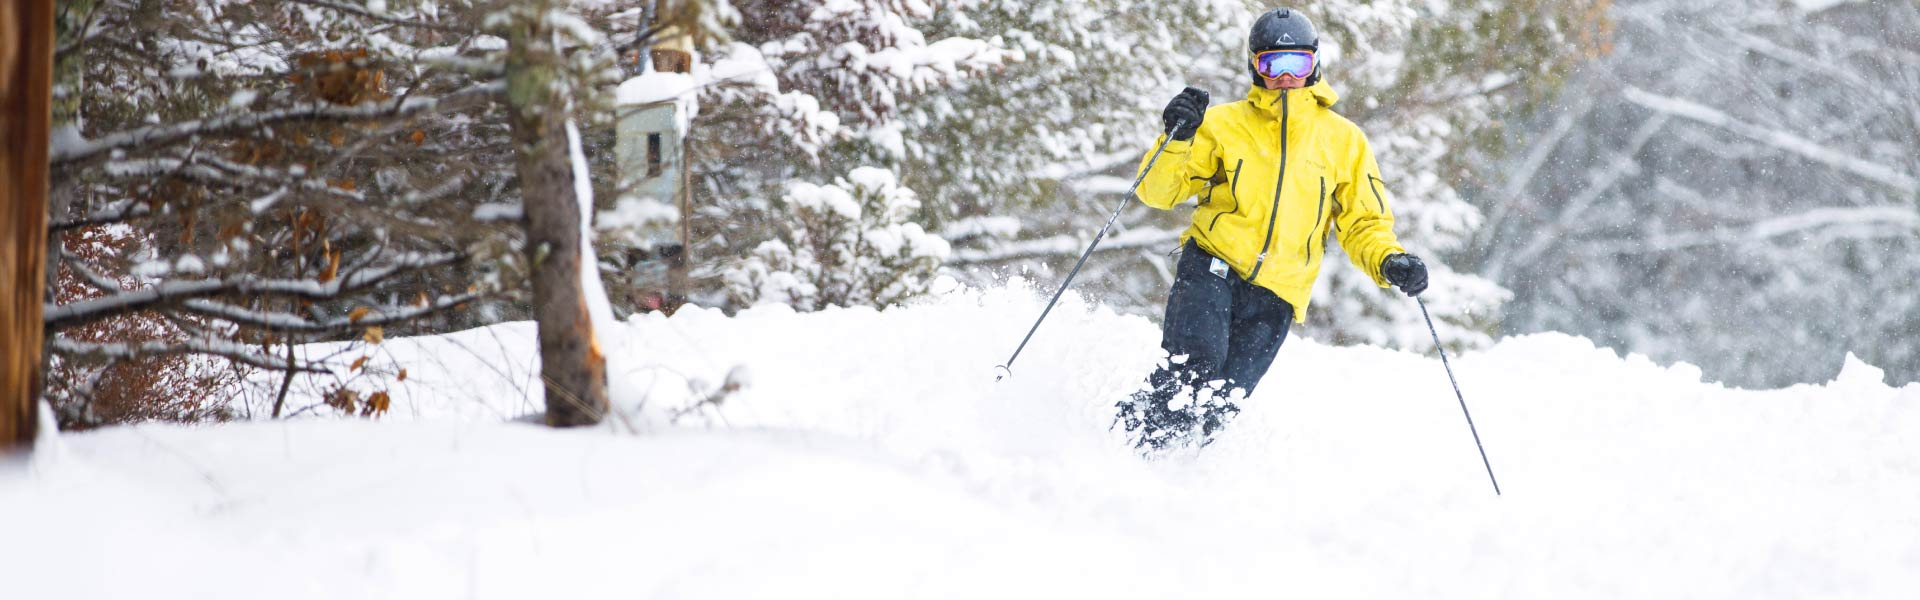 Skier on trail covered with fresh powder